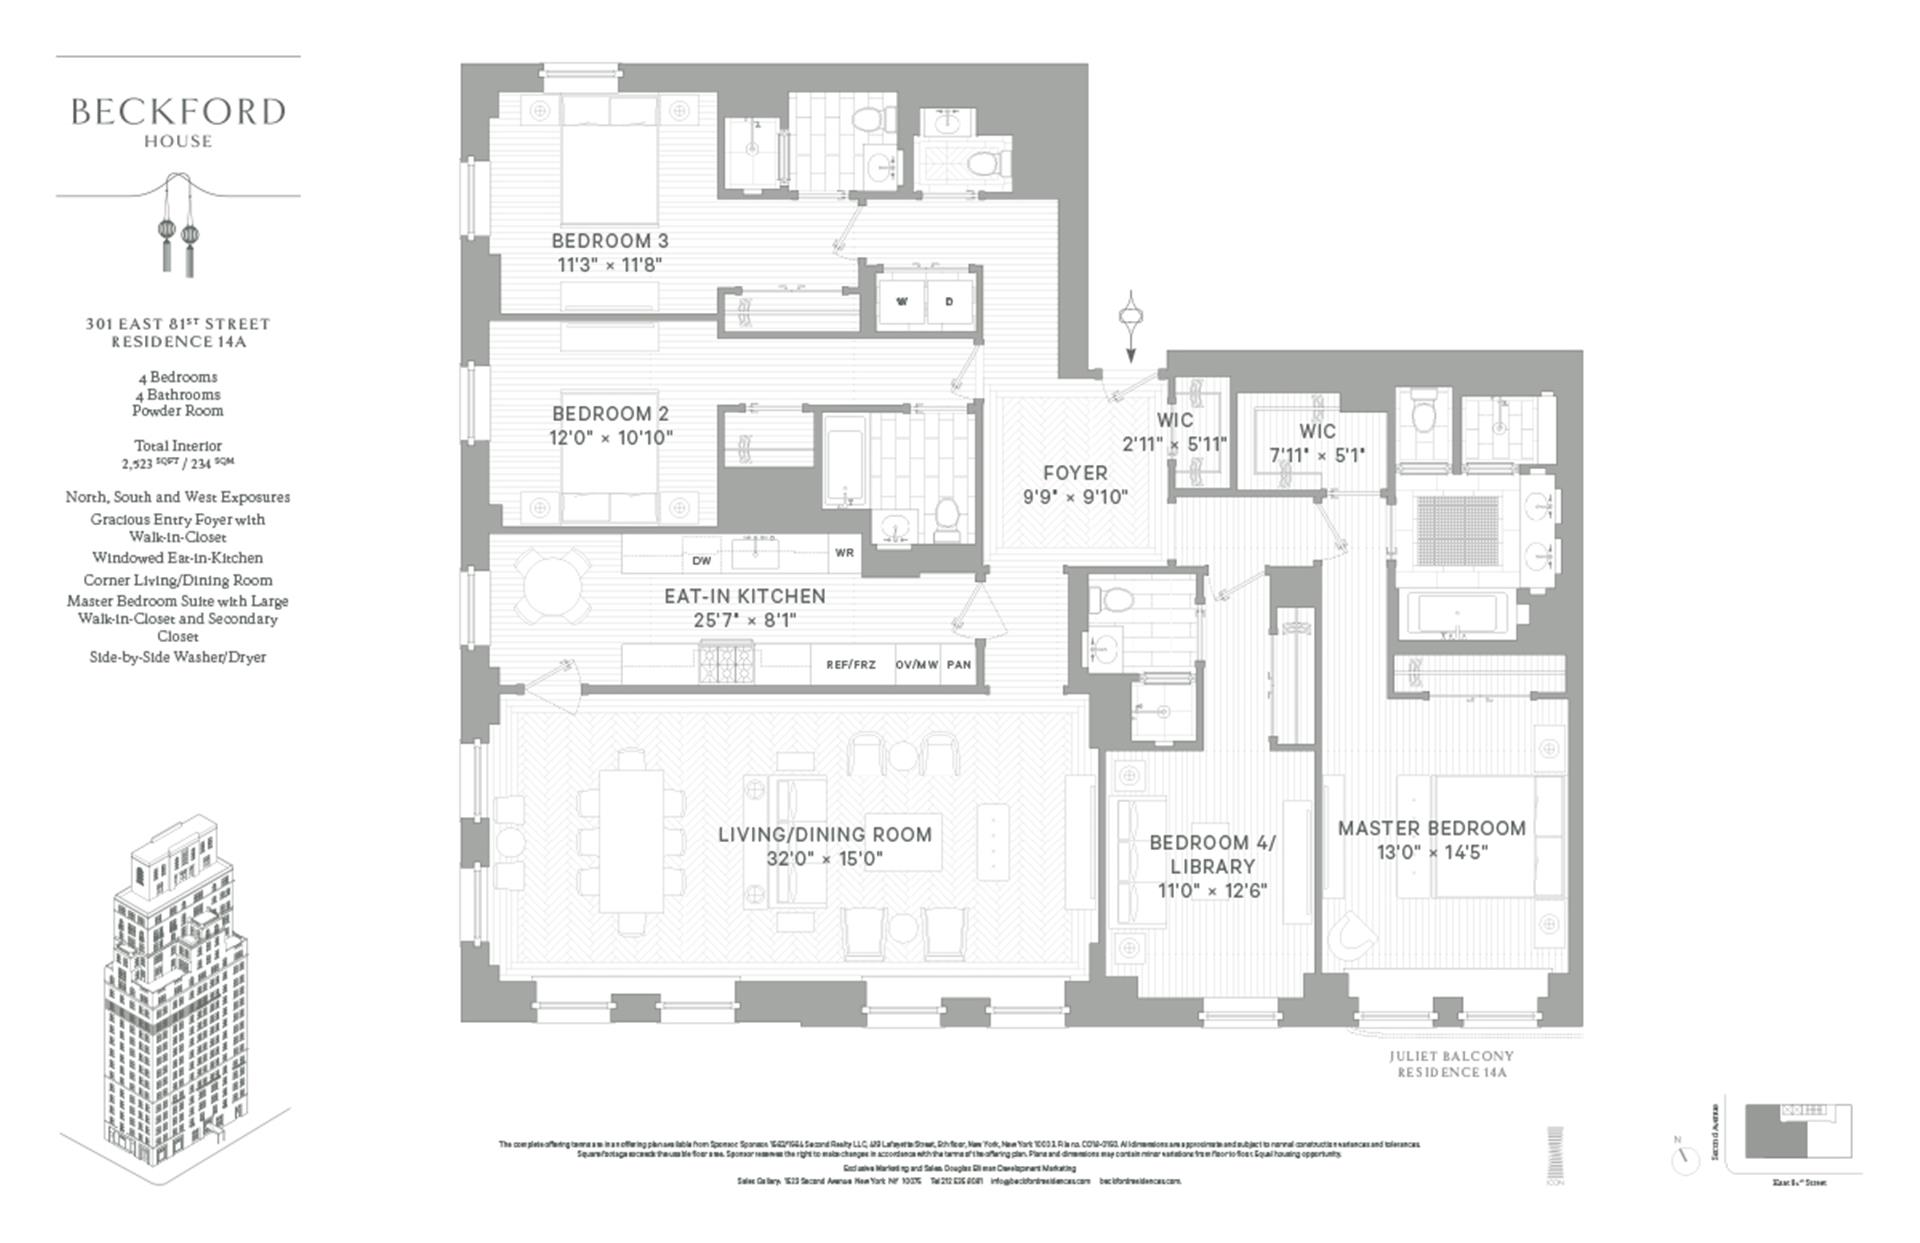 Beckford House At 301 East 81st Street In Upper East Side Luxury Apartments In Nyc Ny Nesting